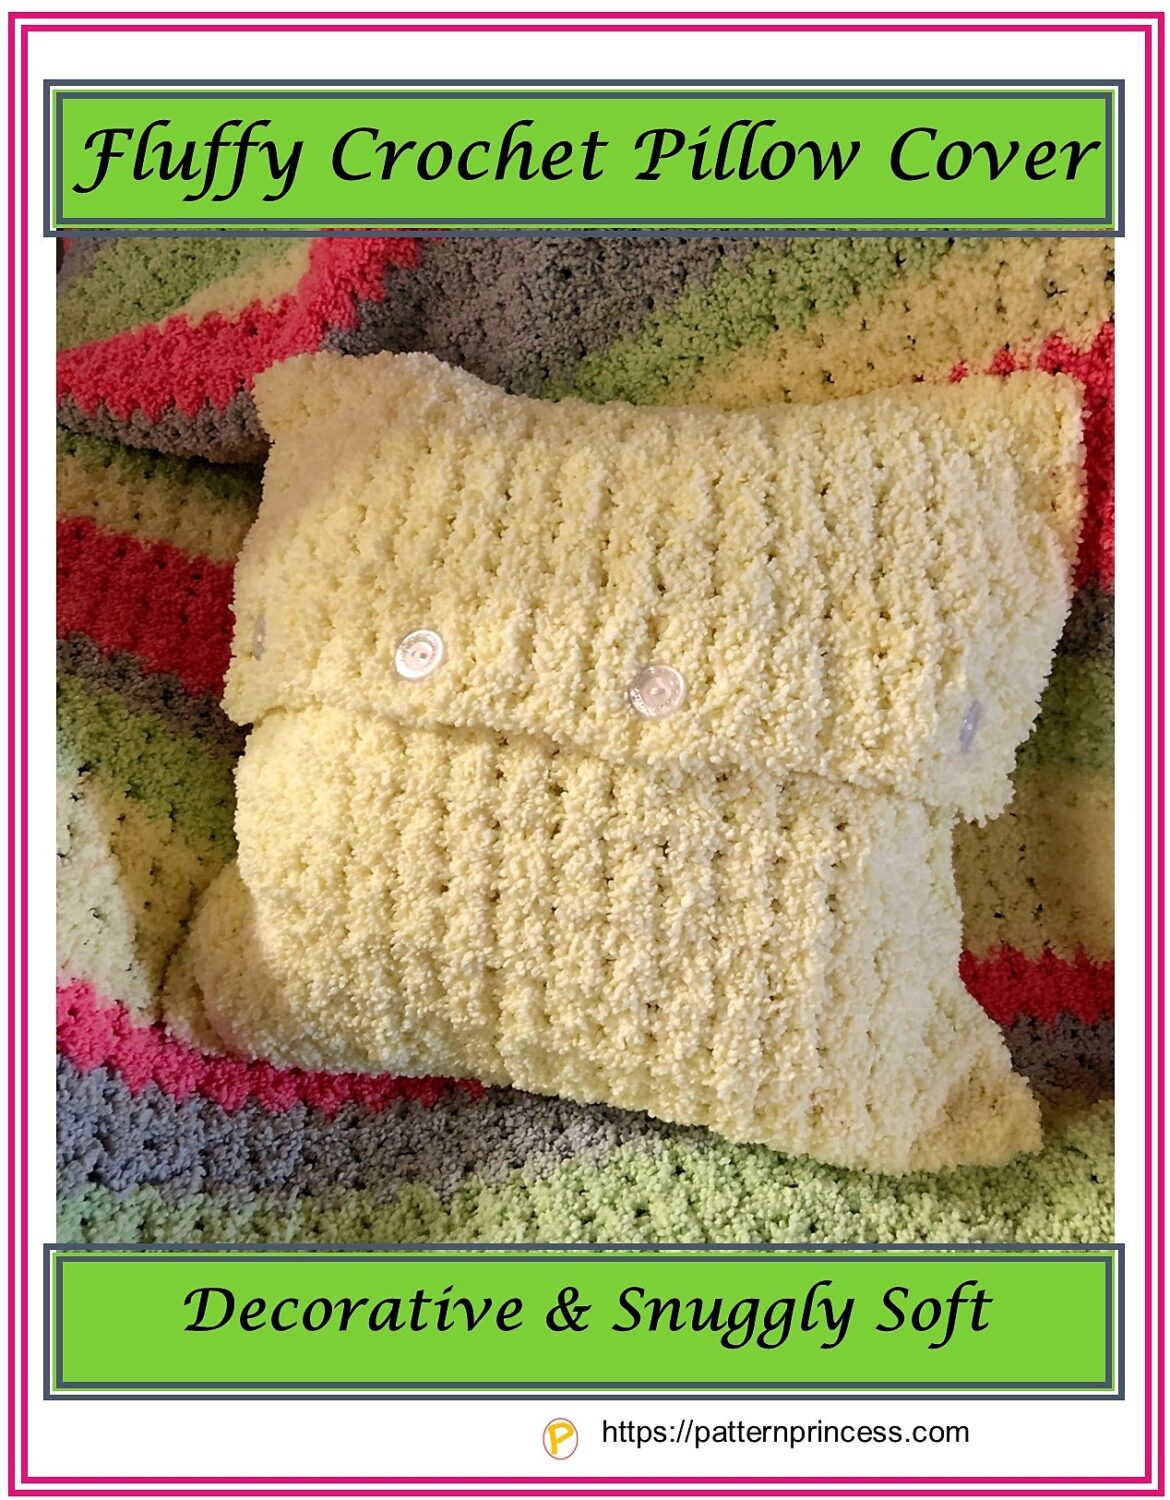 Fluffy Crochet Pillow Cover